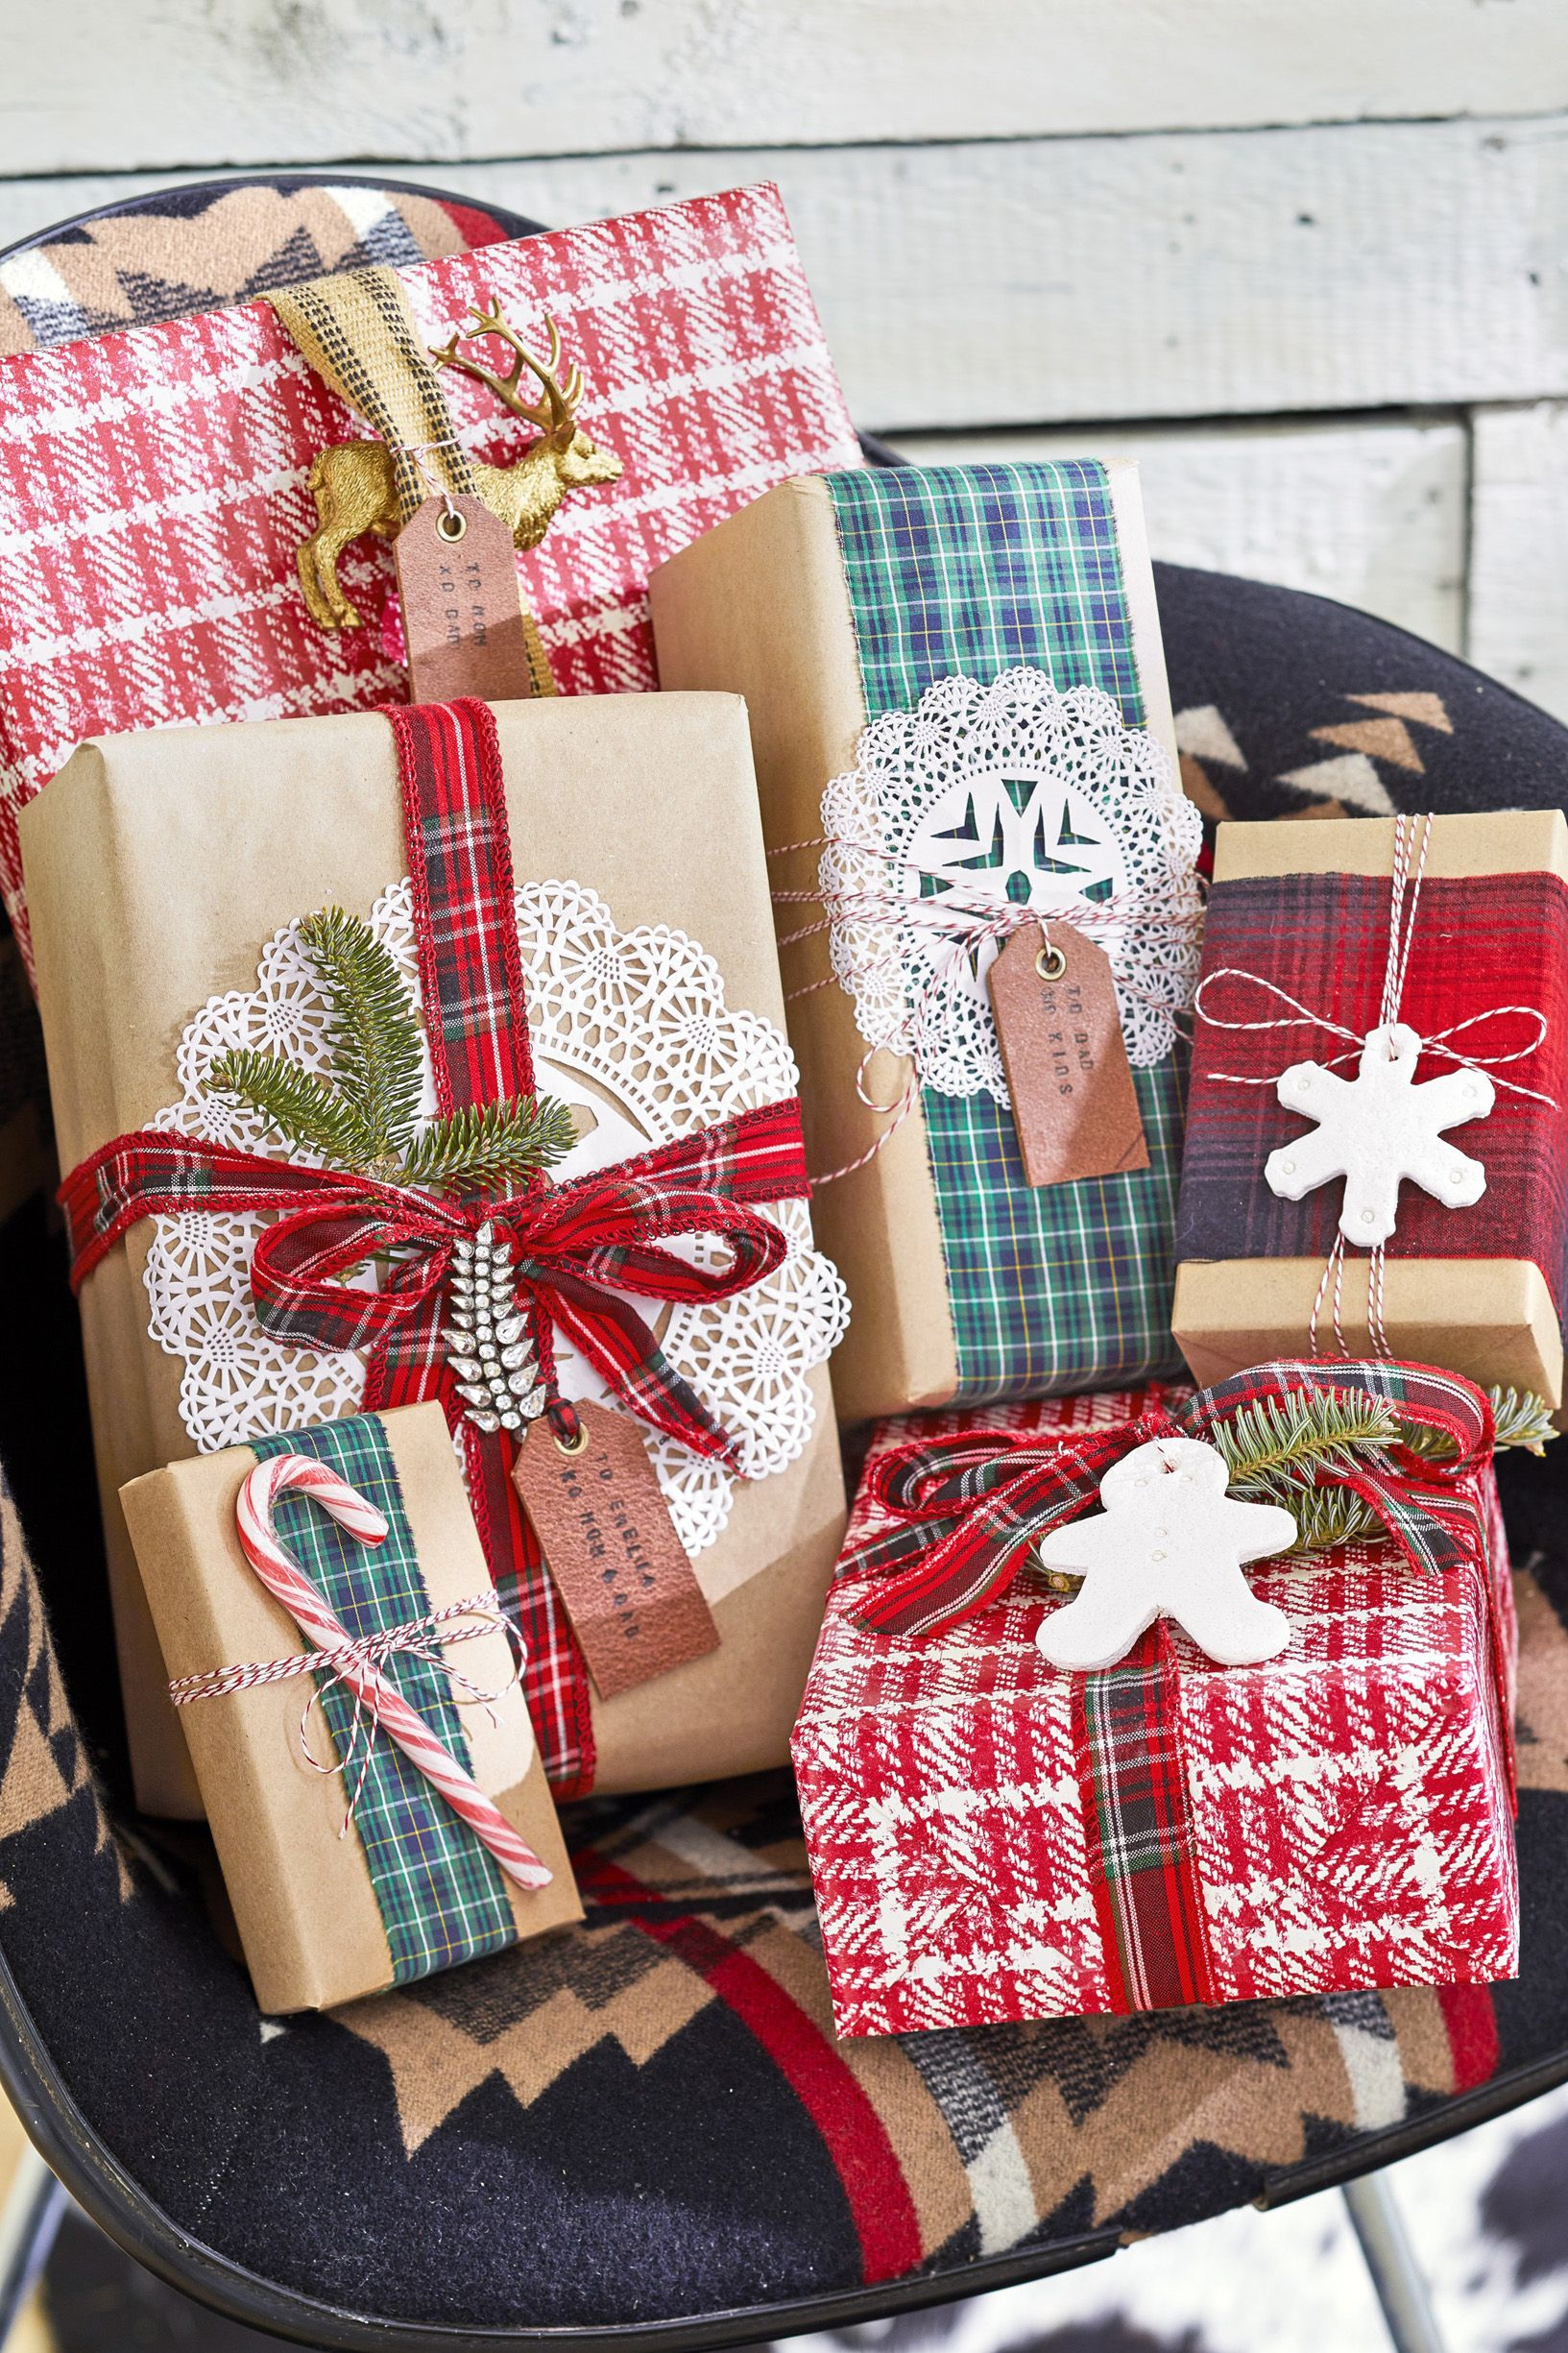 50 Easy Christmas Crafts for Adults to Make - DIY Ideas for Holiday ...